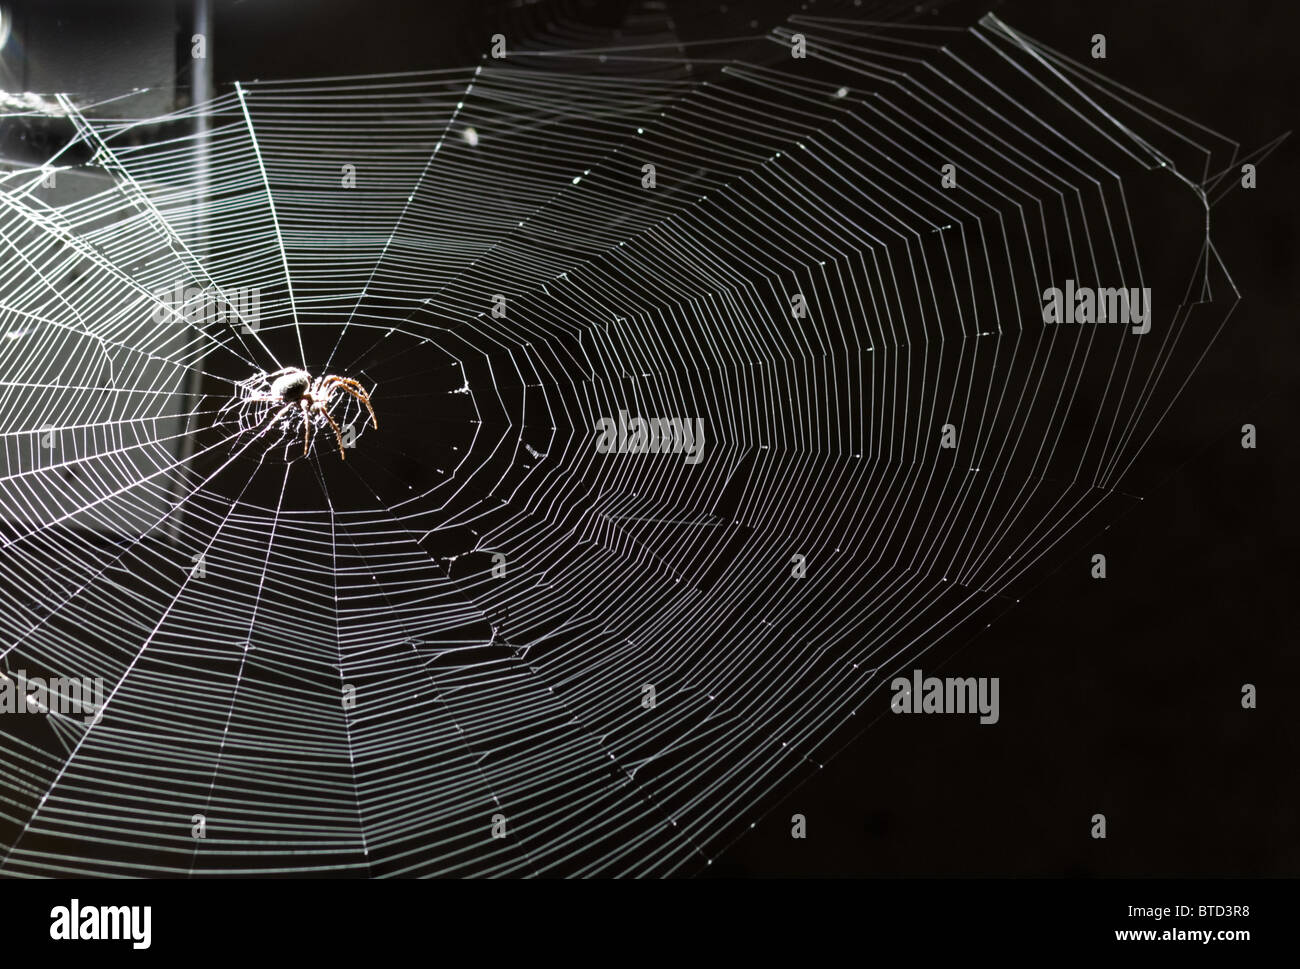 Spider on web at night. - Stock Image